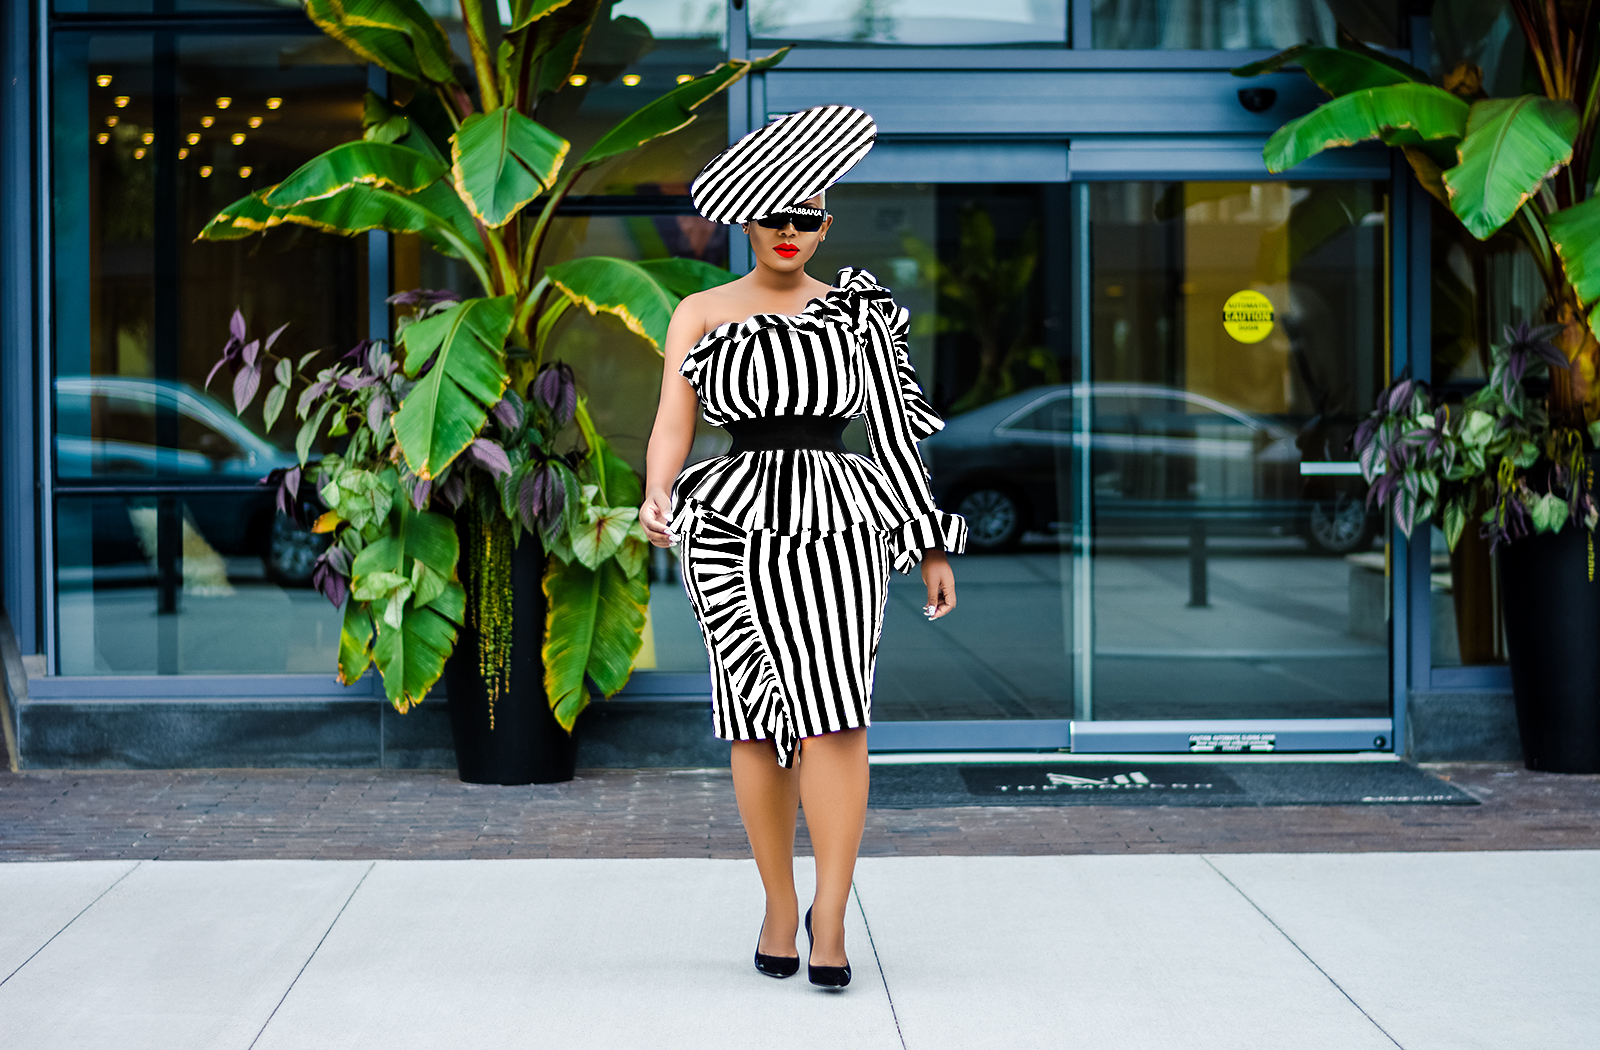 Black and white fashion trends for the woman who dares to be fierce!